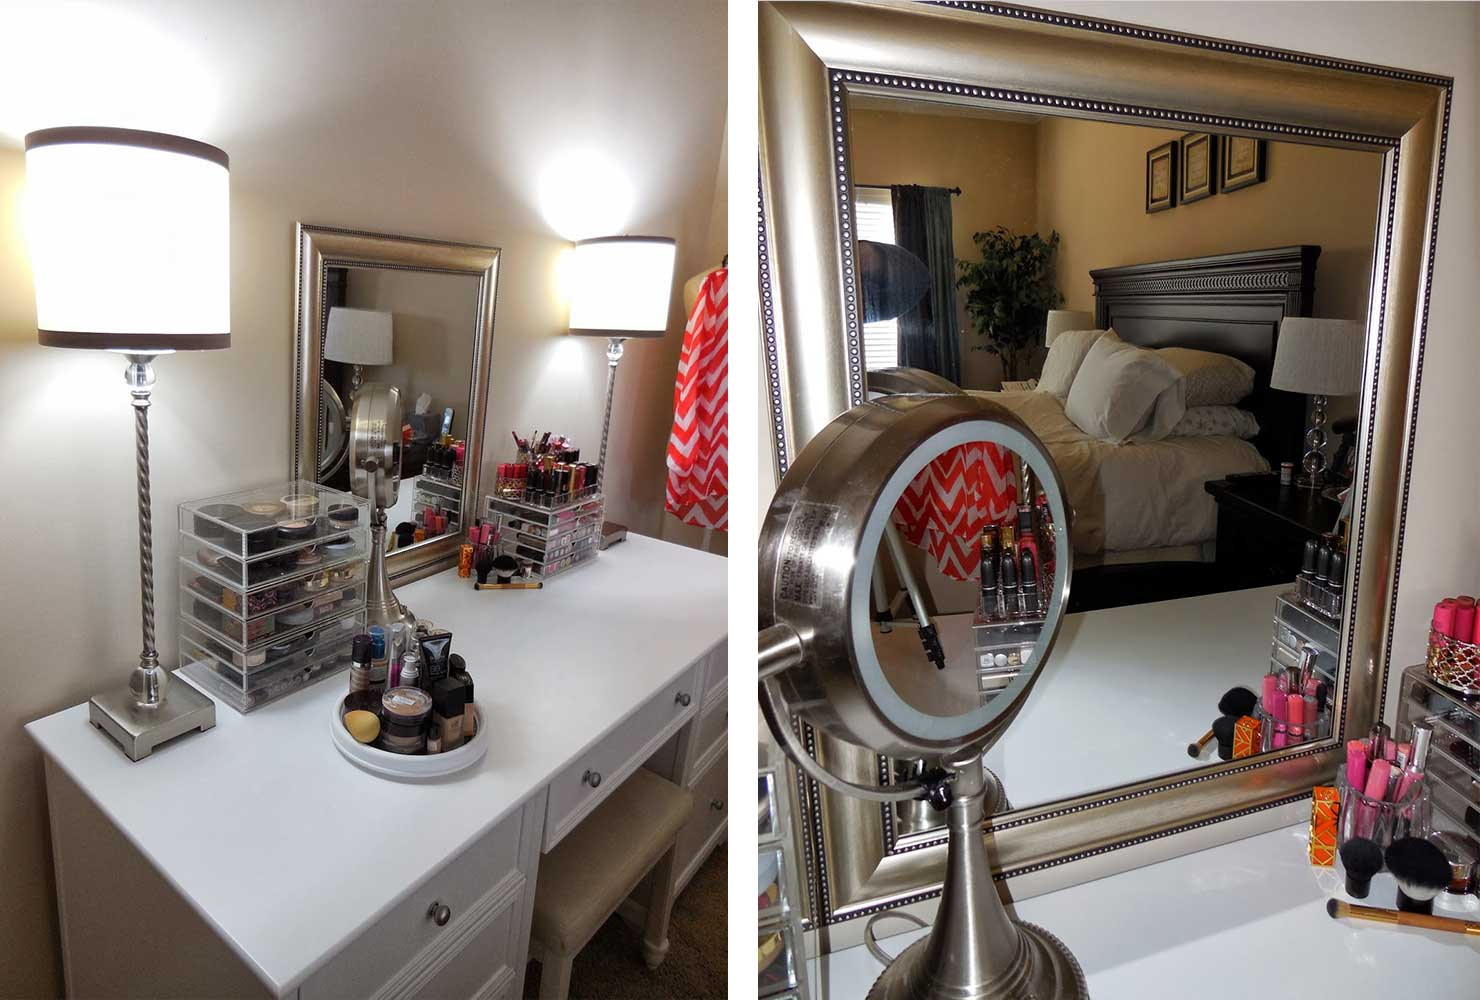 35 Makeup Room Ideas To Brighten Your Morning Routine ... on Make Up Room  id=67931